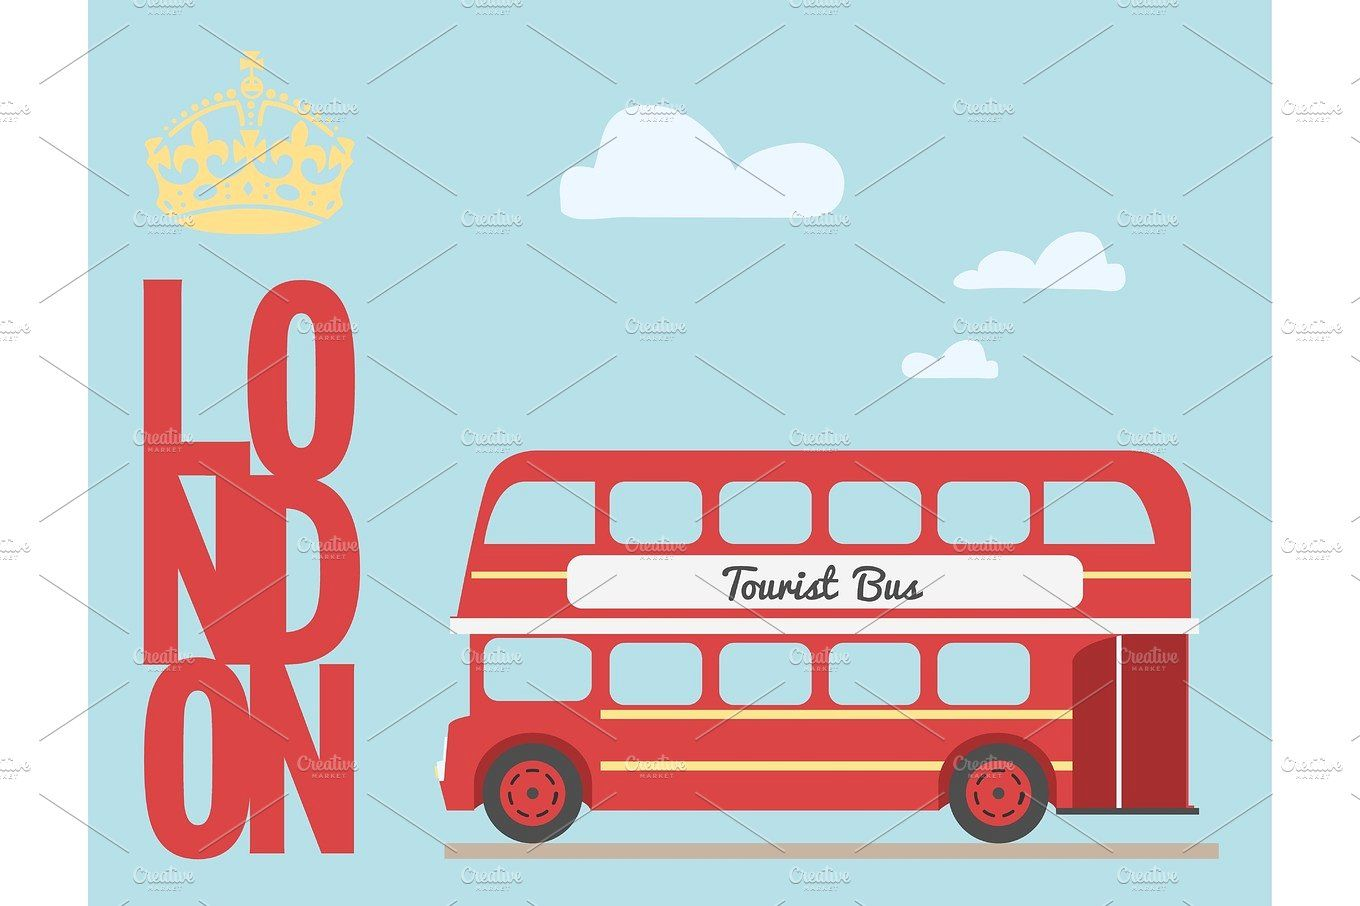 The beatles double bus clipart clipart library stock Double decker bus cartoon from England British tourist ... clipart library stock